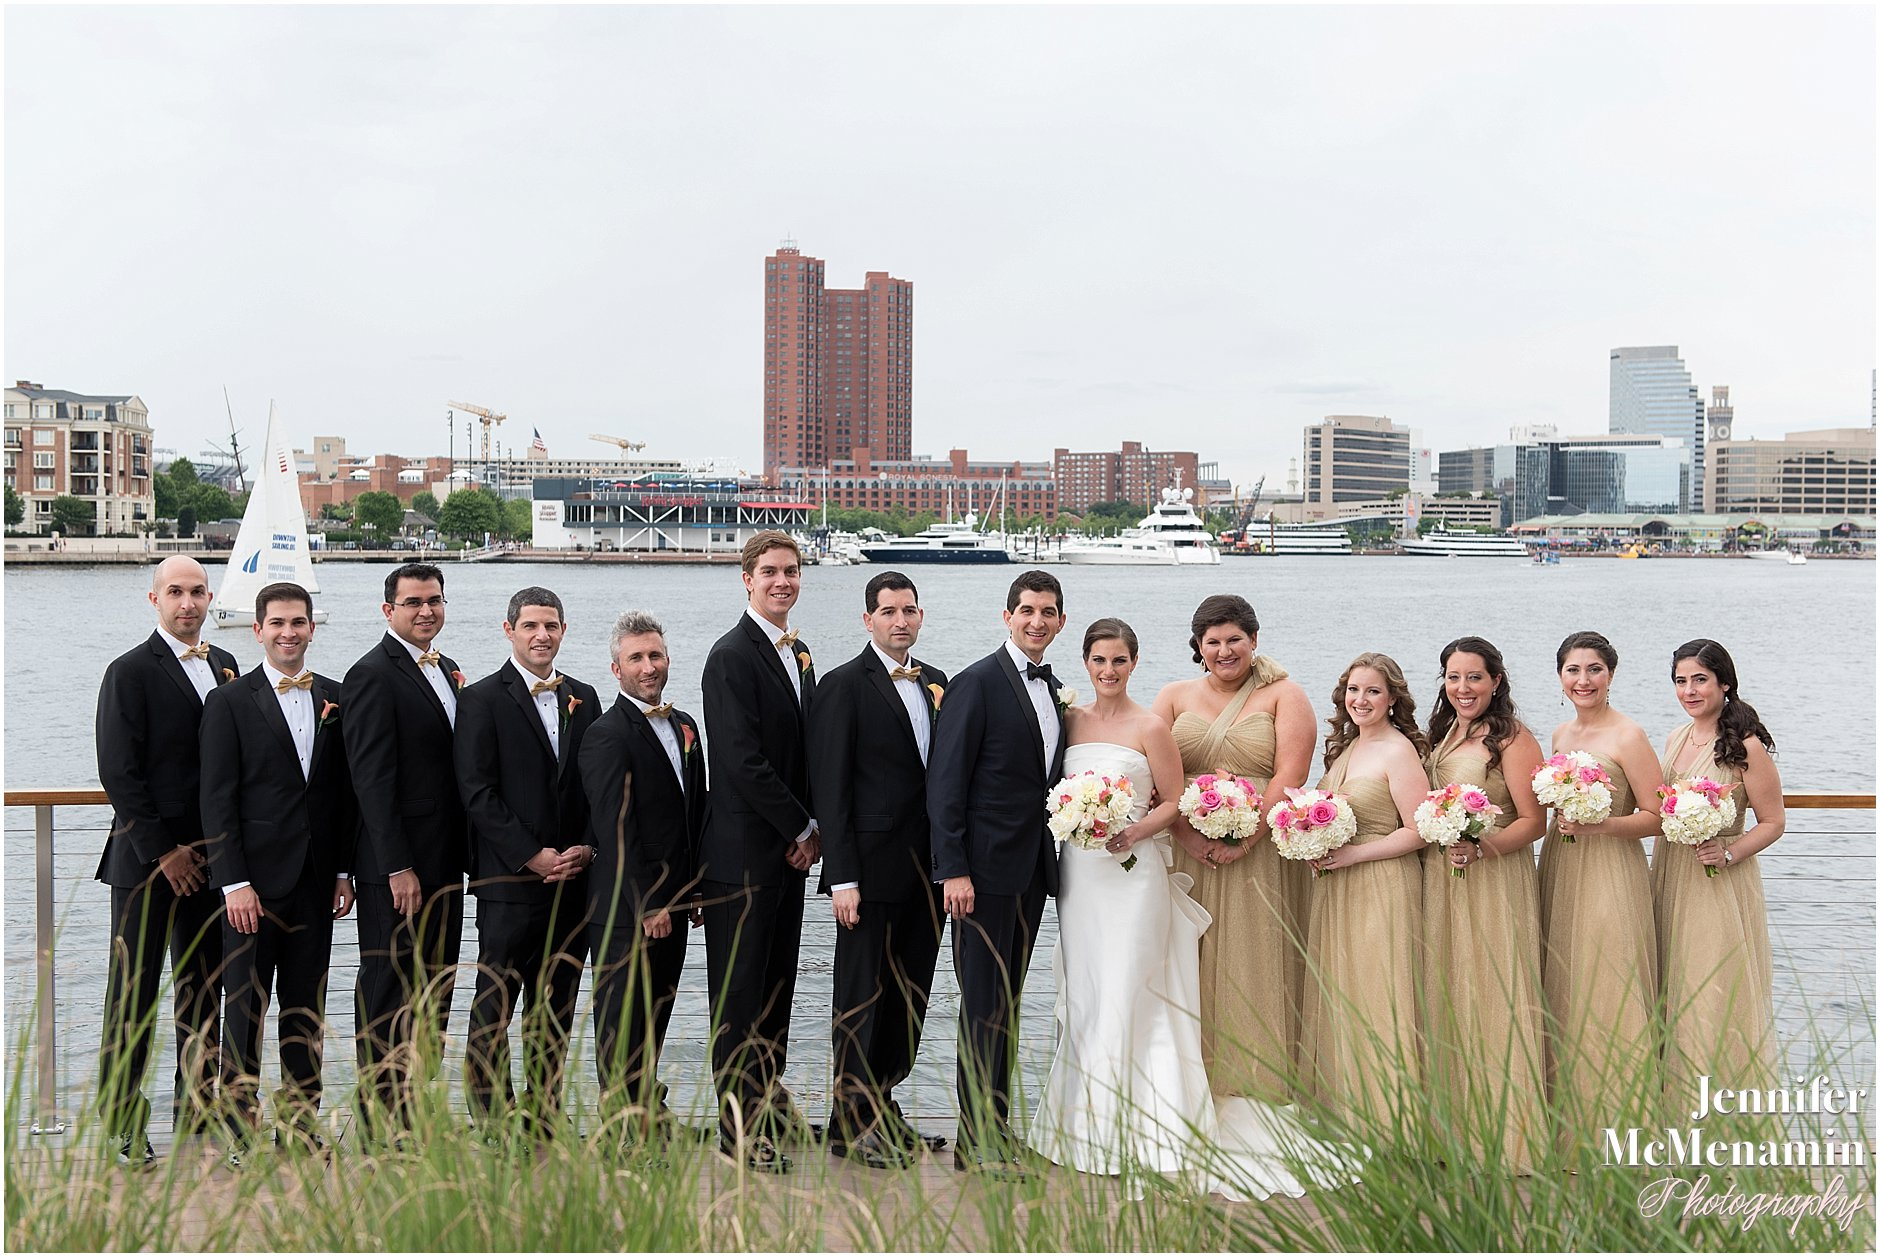 027-Jennifer-McMenamin-Photography-Baltimore-Waterfront-Marriott-wedding_0025